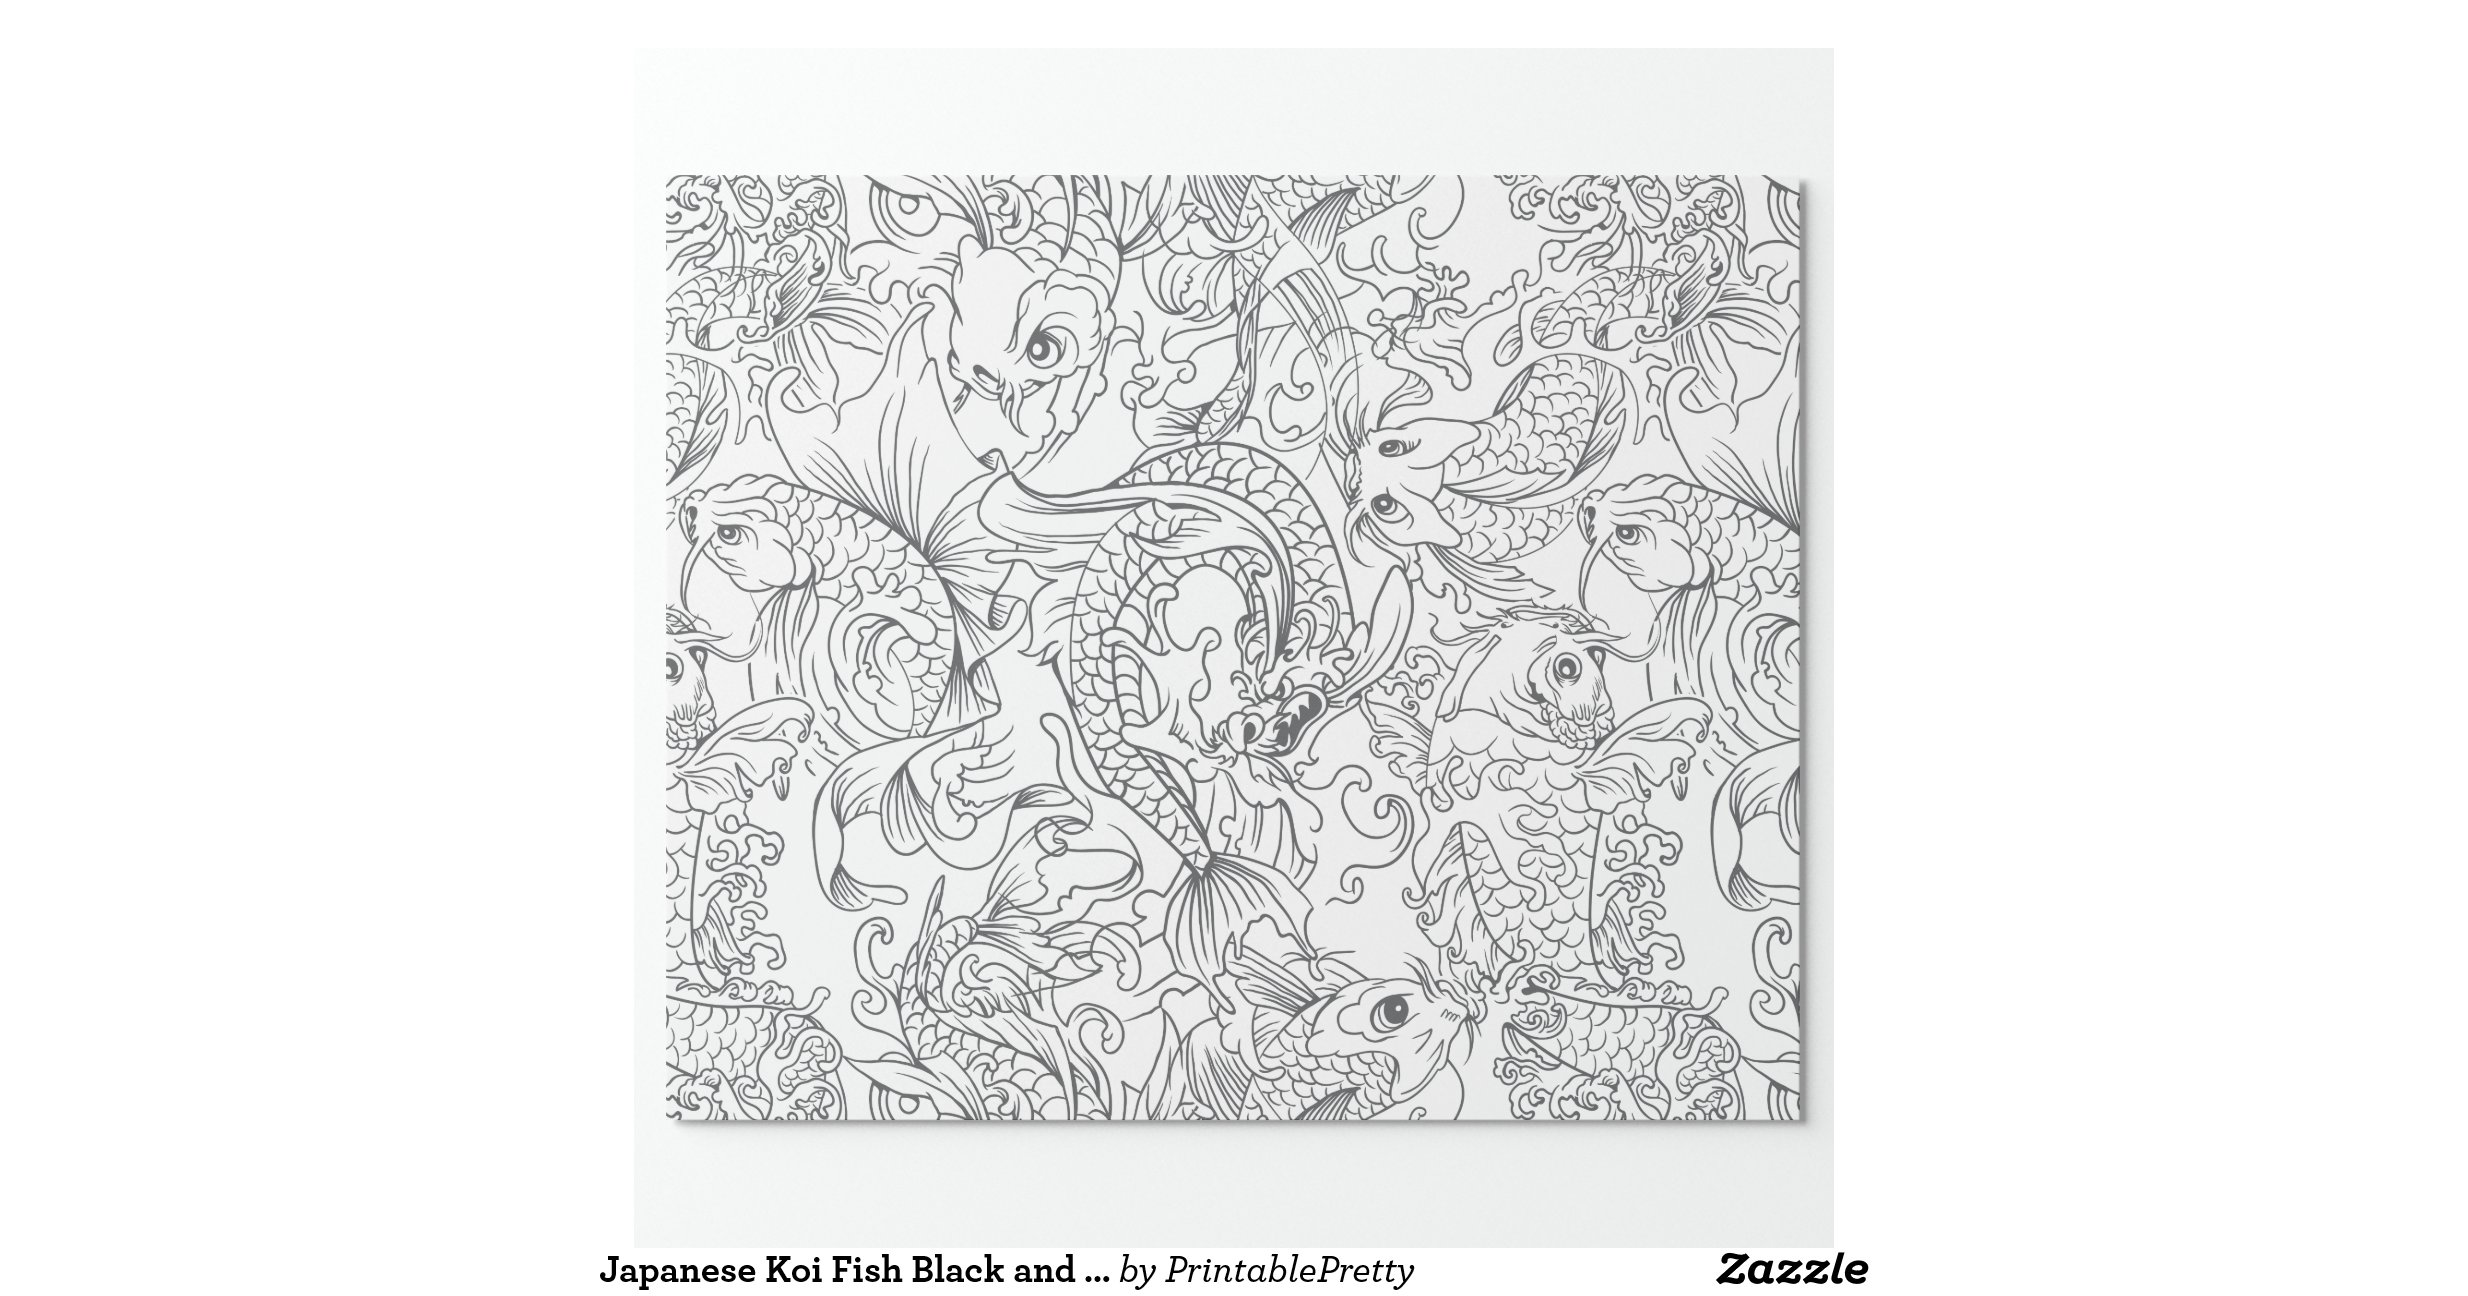 Japanese koi fish black and white pattern wrapping paper for Black and white koi fish